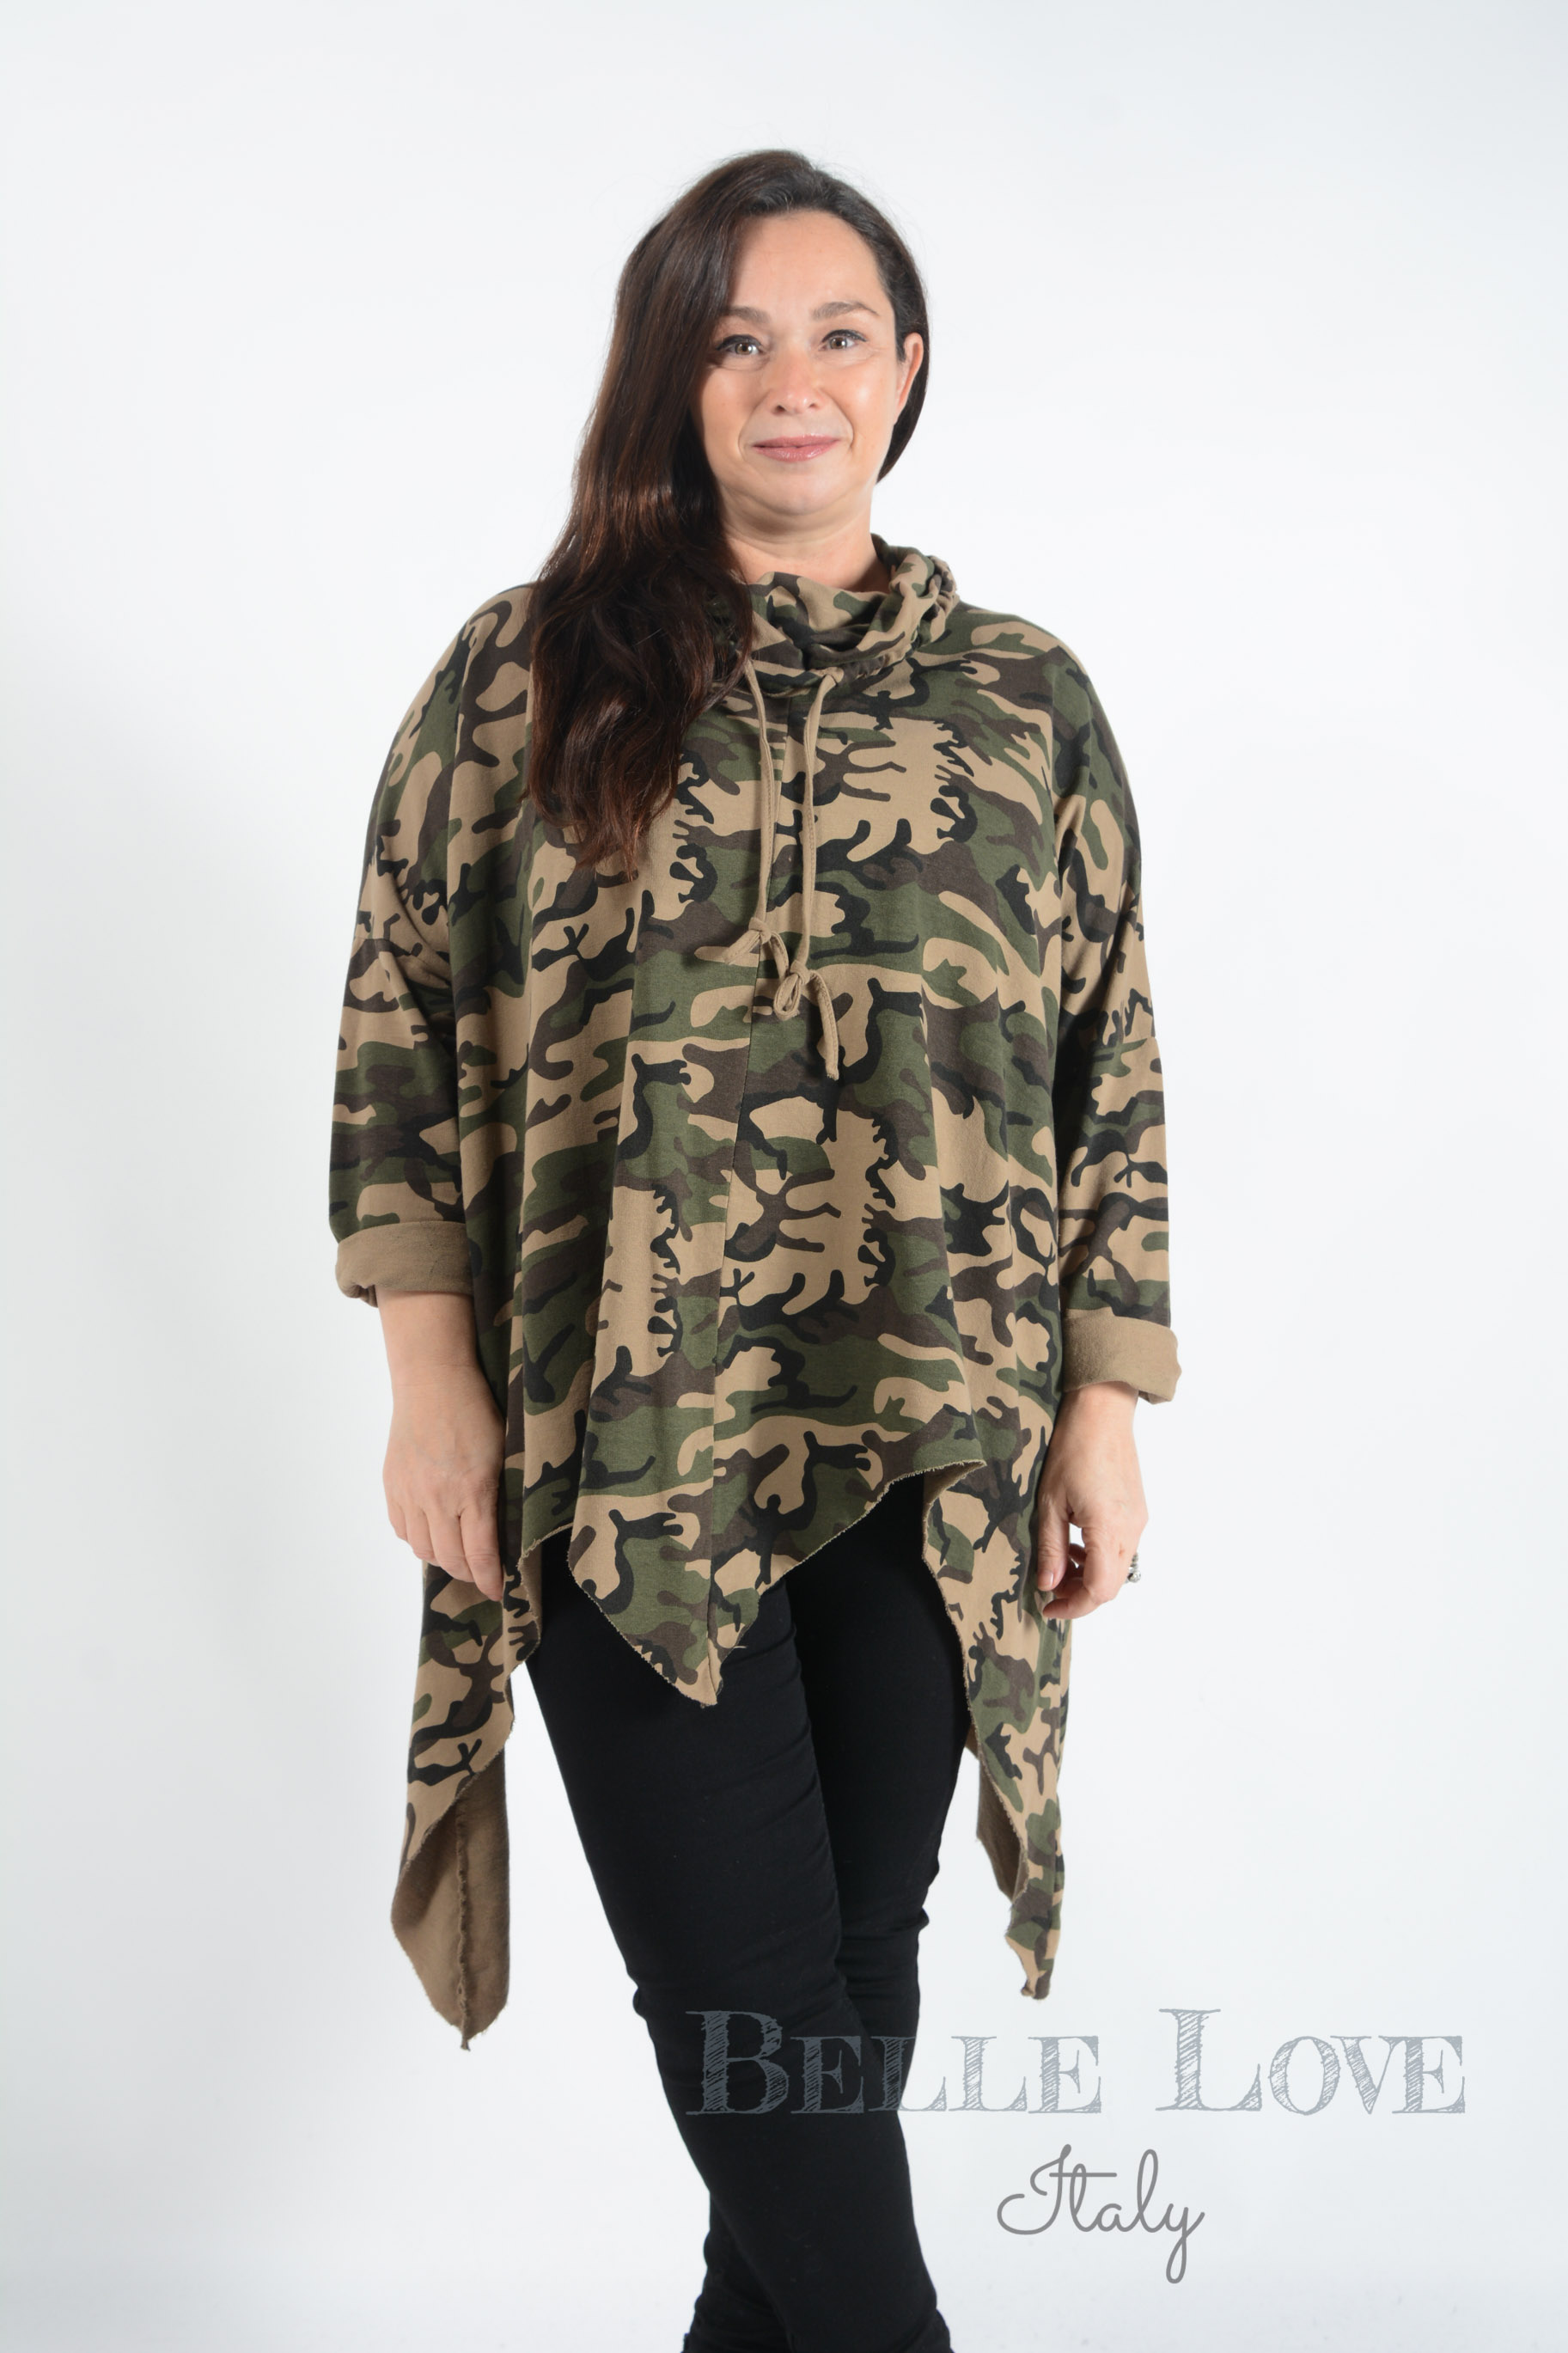 Belle Love Italy Hallie Cowl Neck Camouflage Tunic